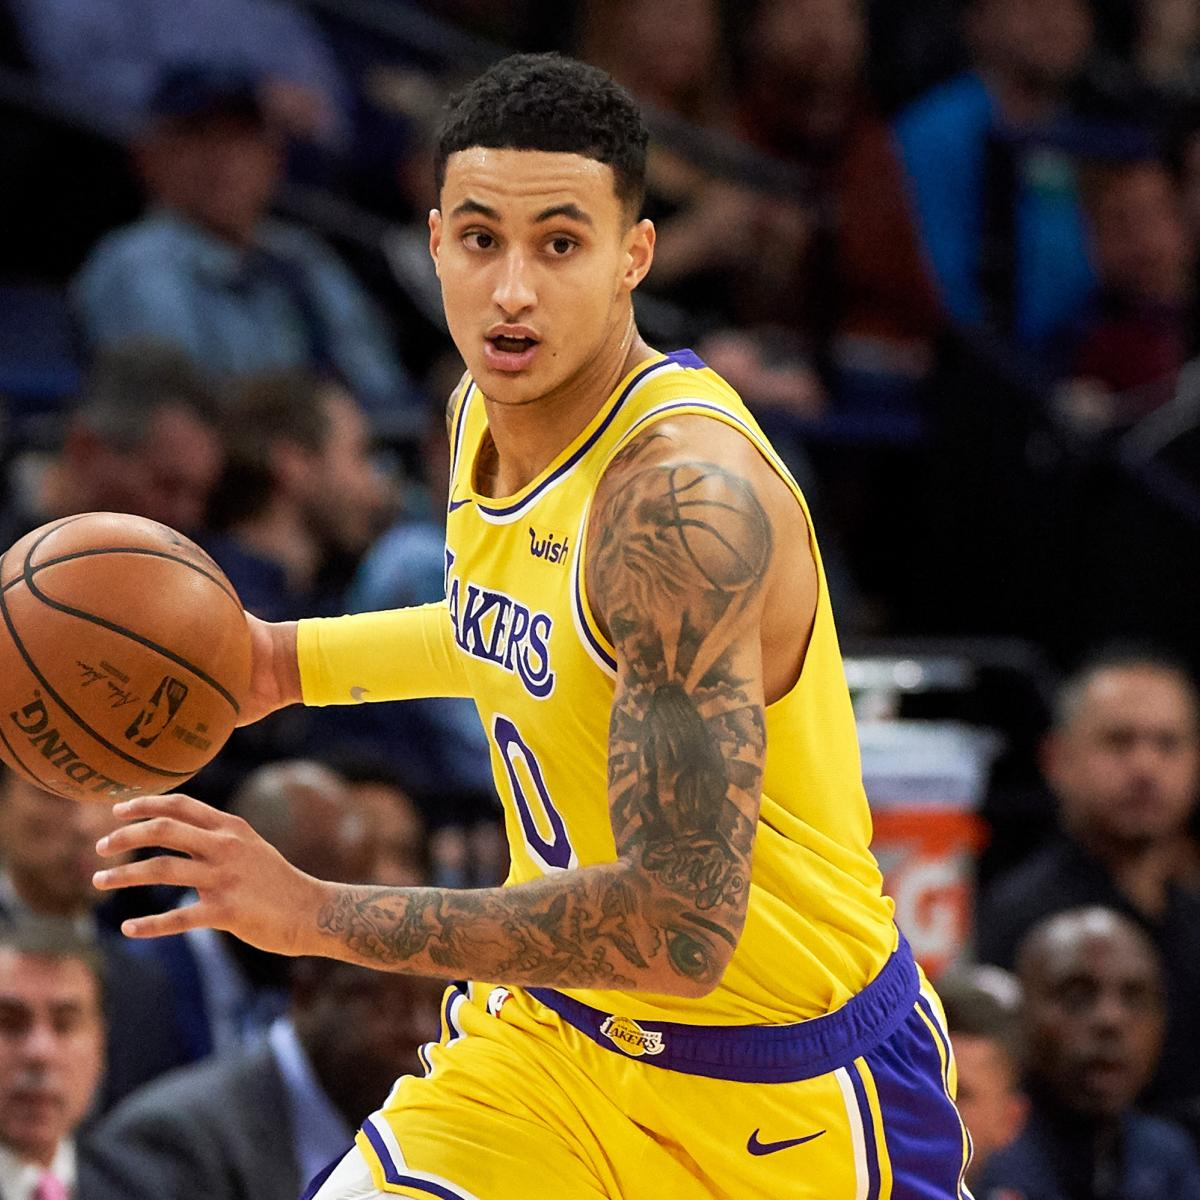 70c6c0dd921 Lakers News: Kyle Kuzma Says He Feels Like 'A Starter in This League' |  Bleacher Report | Latest News, Videos and Highlights